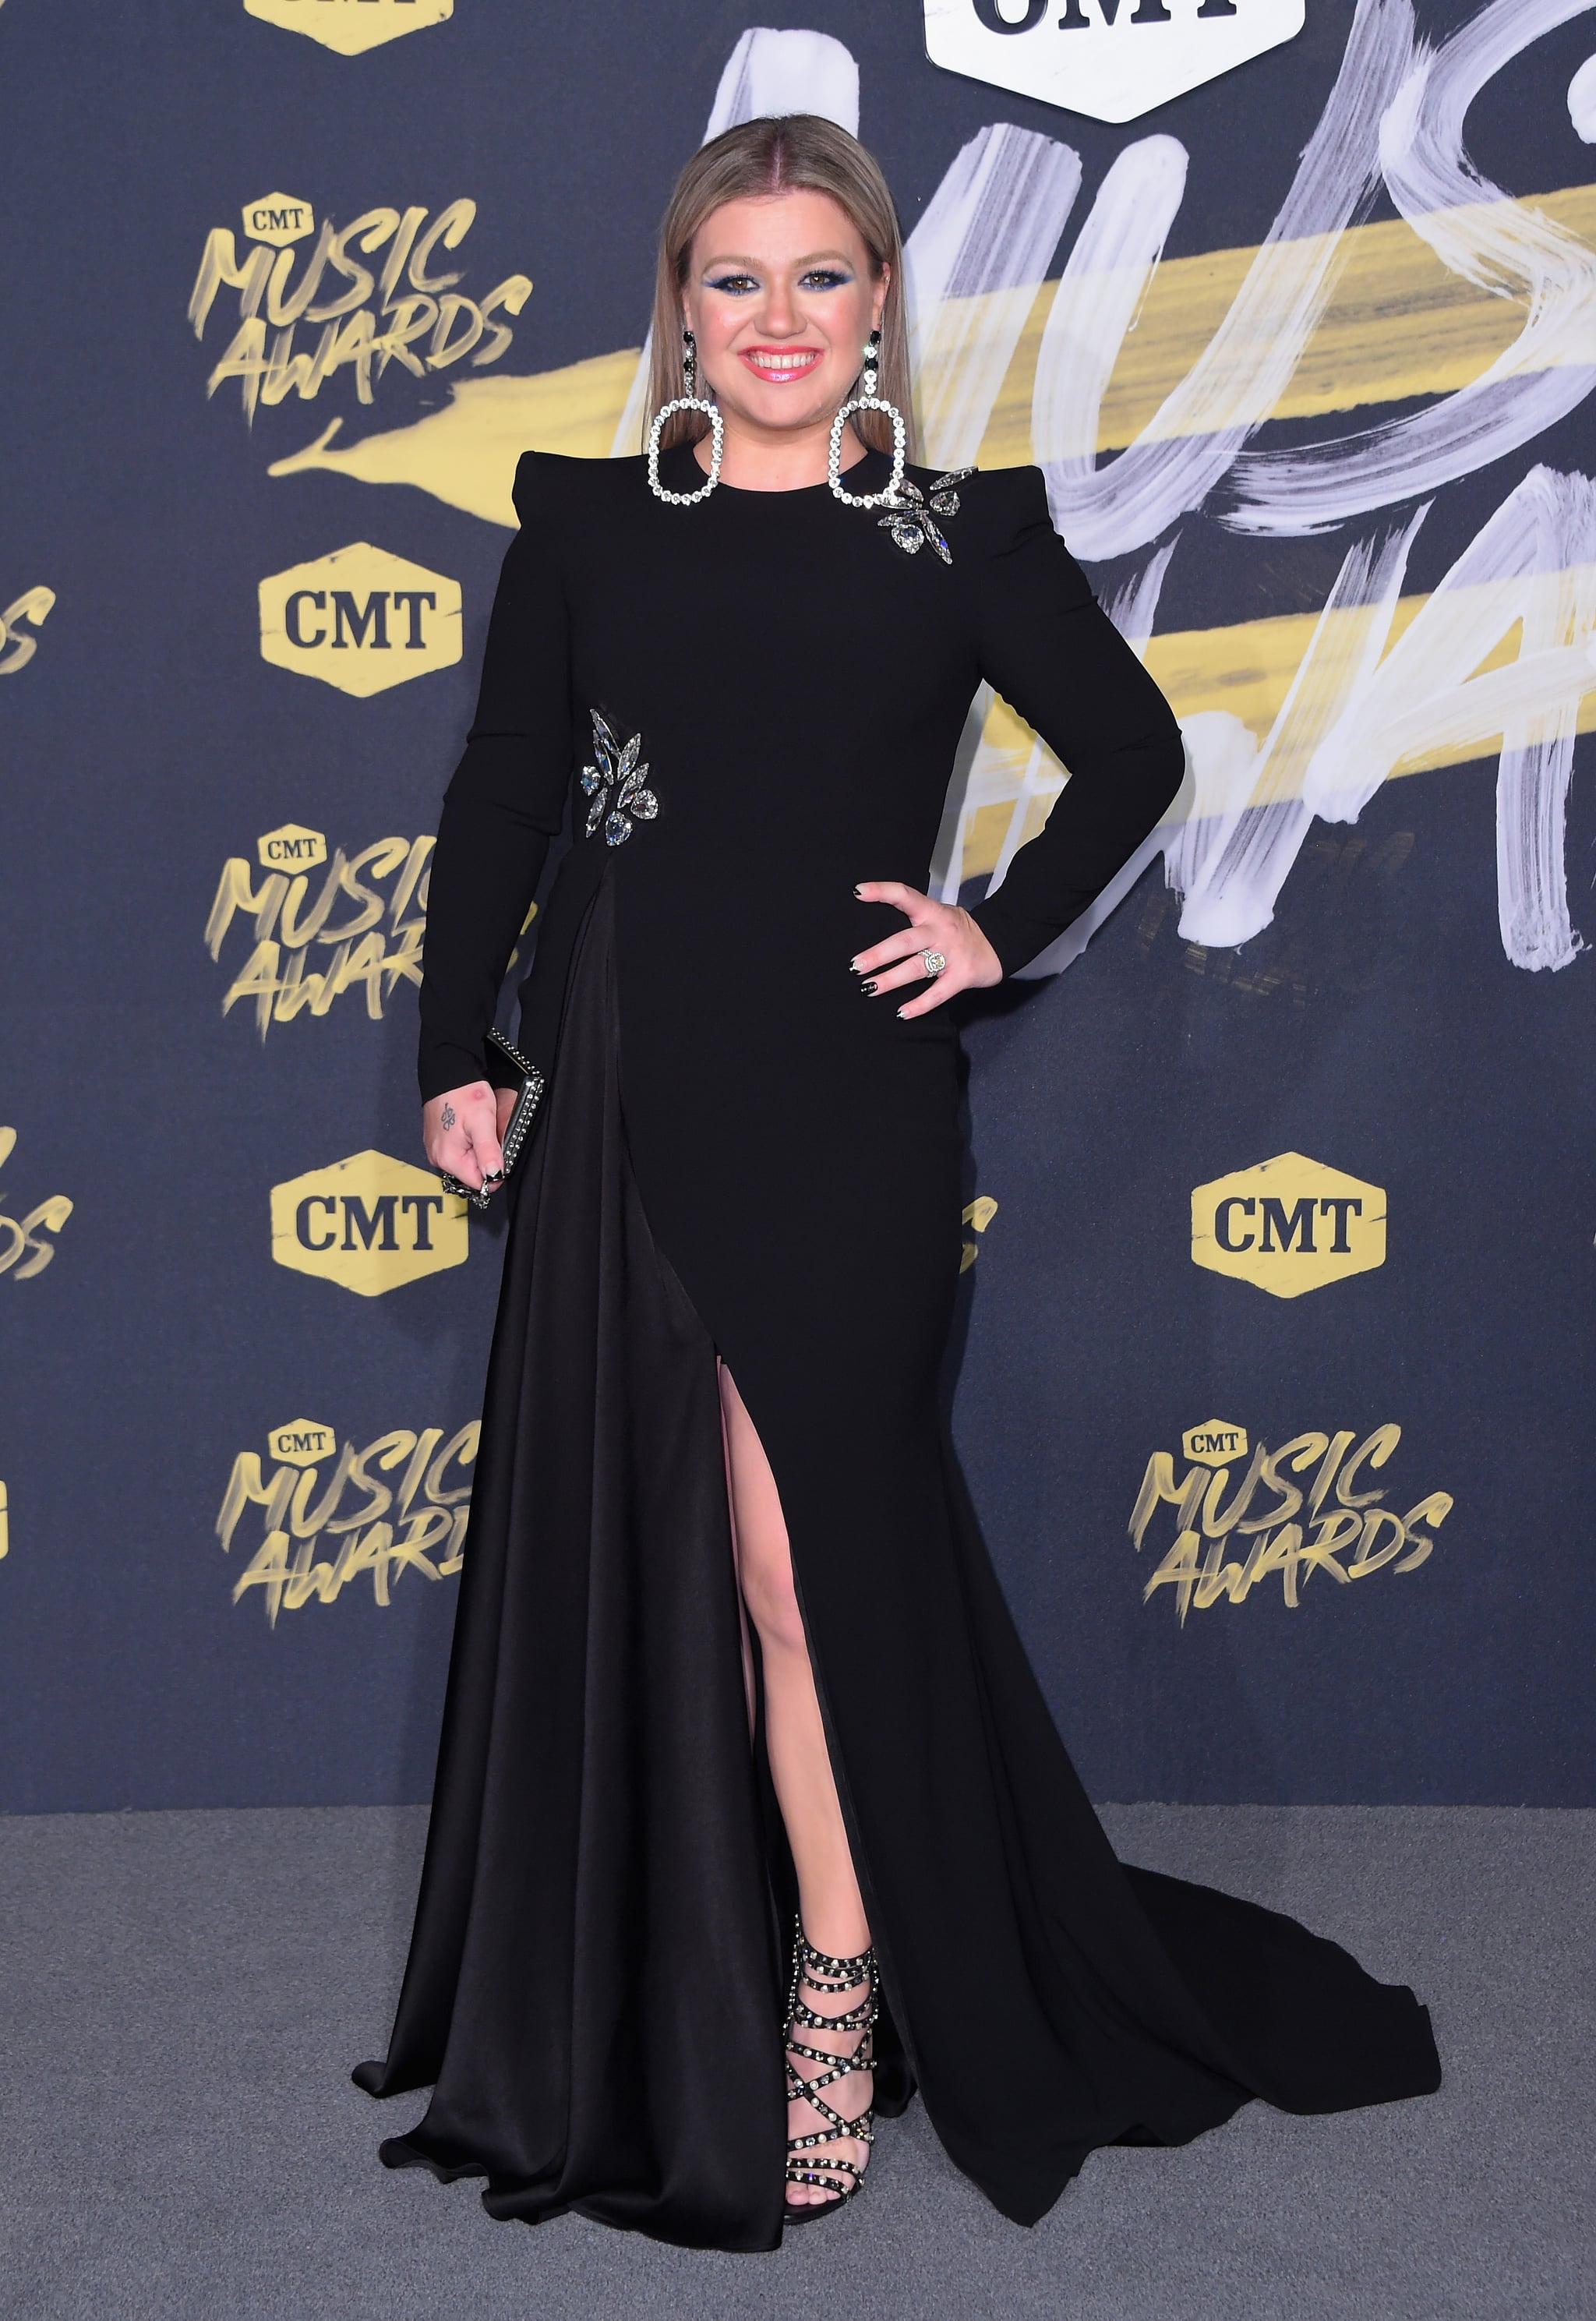 NASHVILLE, TN - JUNE 06:  Kelly Clarkson attends the 2018 CMT Music Awards at Bridgestone Arena on June 6, 2018 in Nashville, Tennessee.  (Photo by Michael Loccisano/WireImage)